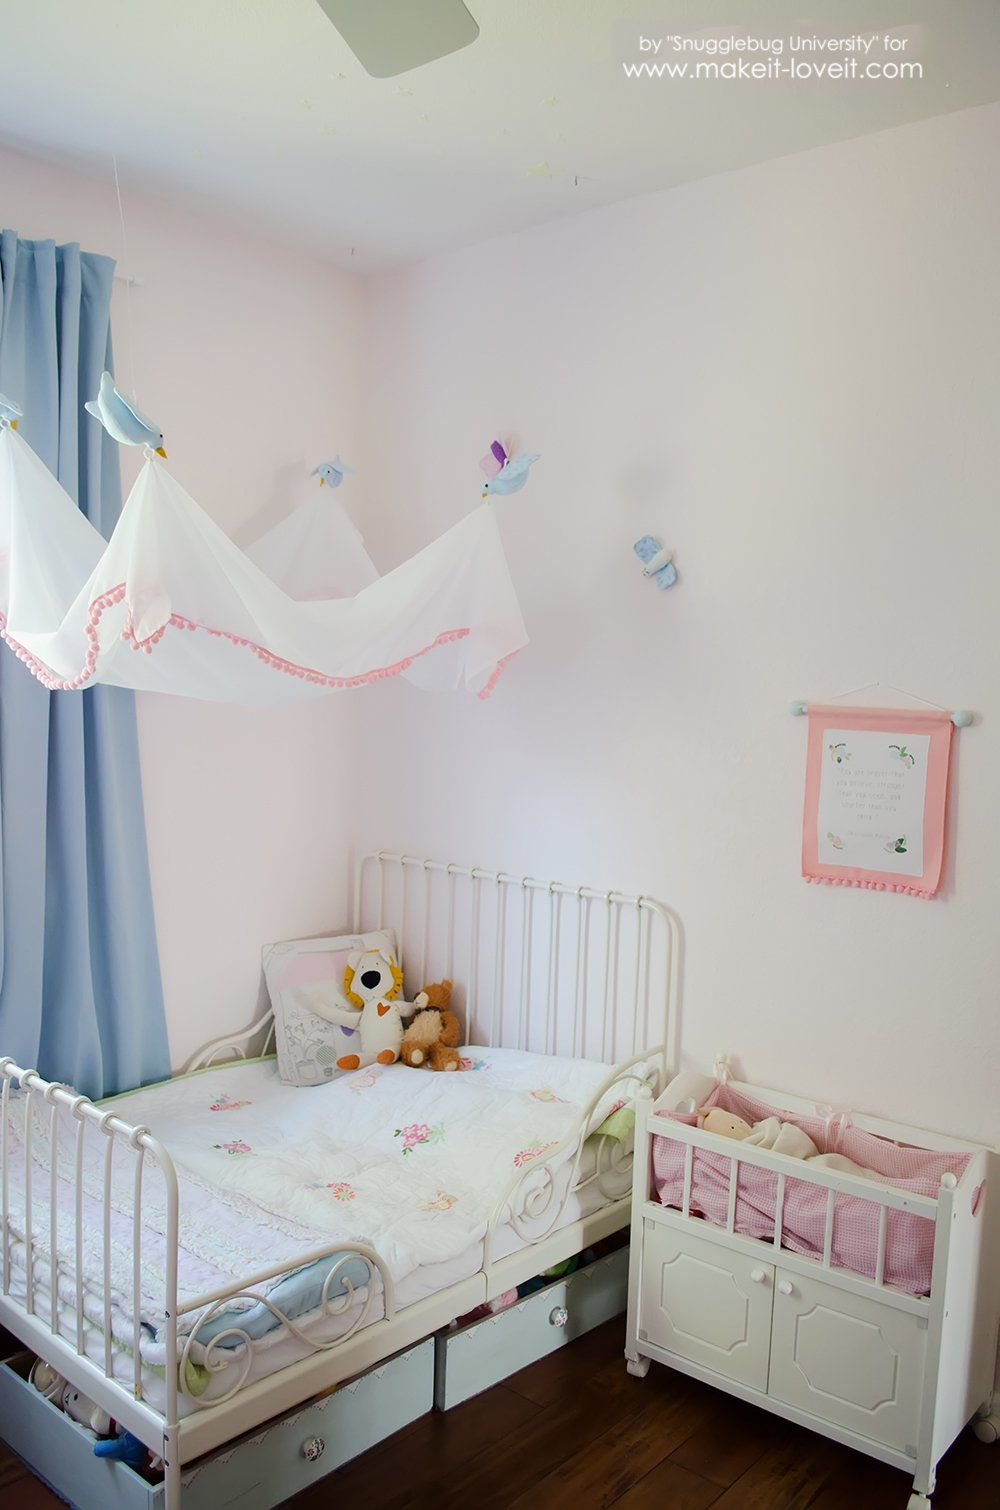 Kids bed canopy ideas - Easy Diy Bird Canopy For Above A Bed Just Like Cinderella